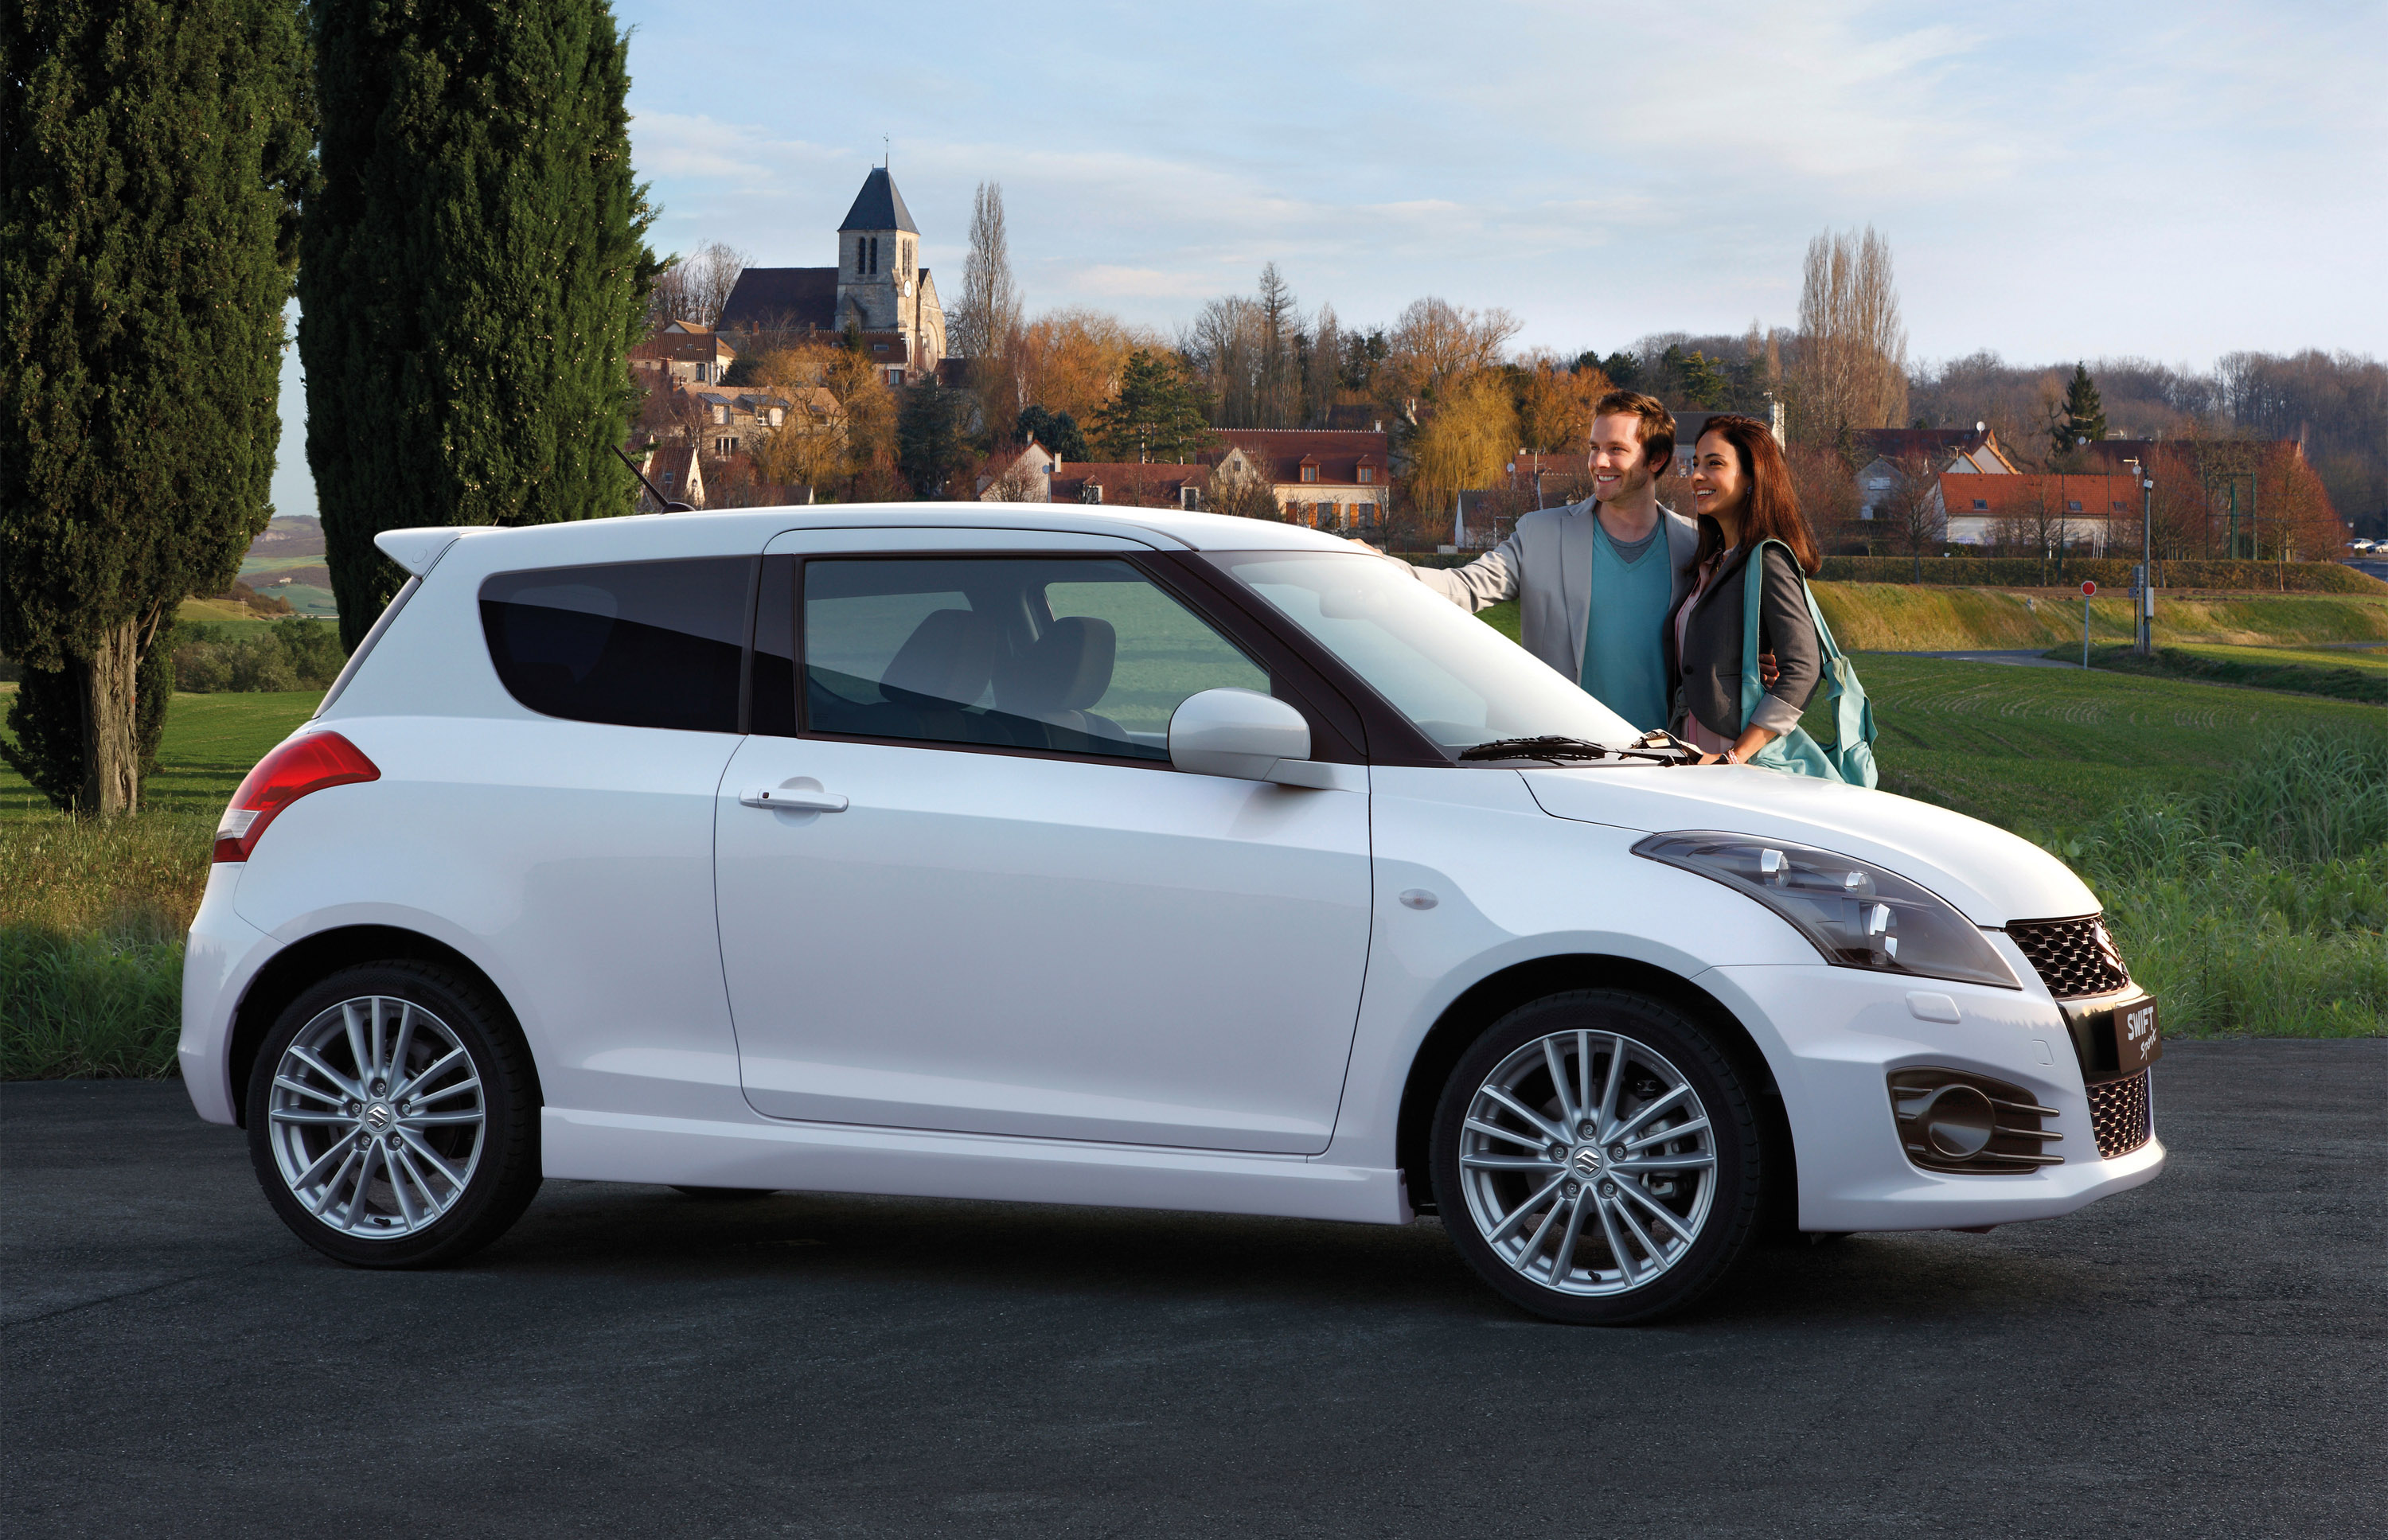 2012 Suzuki Swift Sport Price 163 13 500